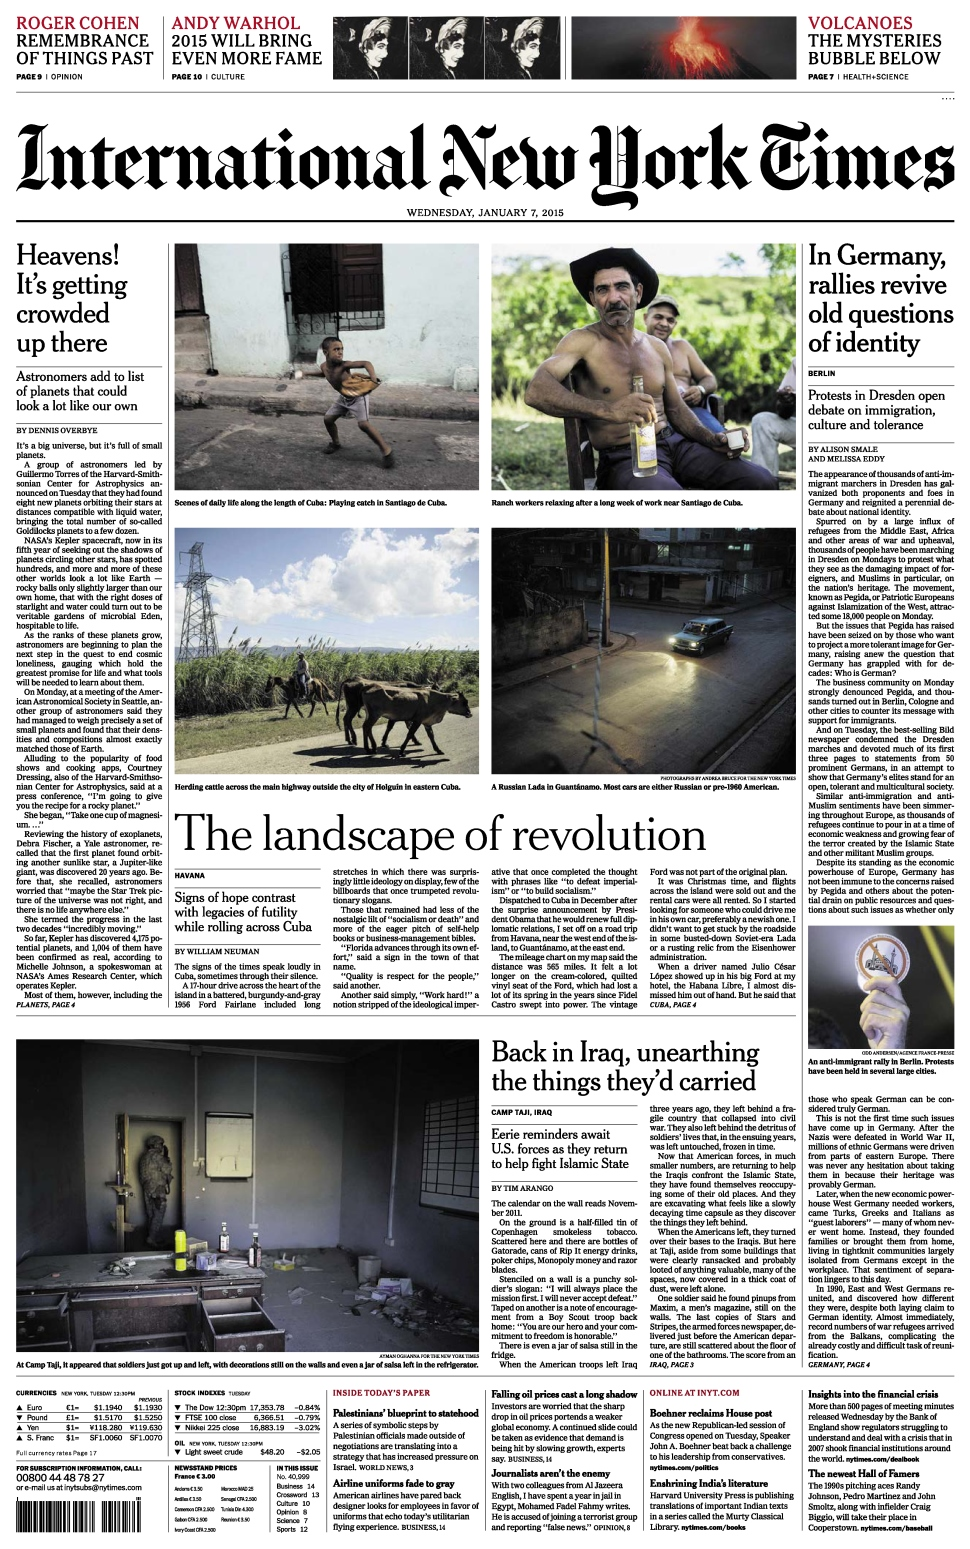 International New York Times - Wednesday 7 Januray 2015 free download